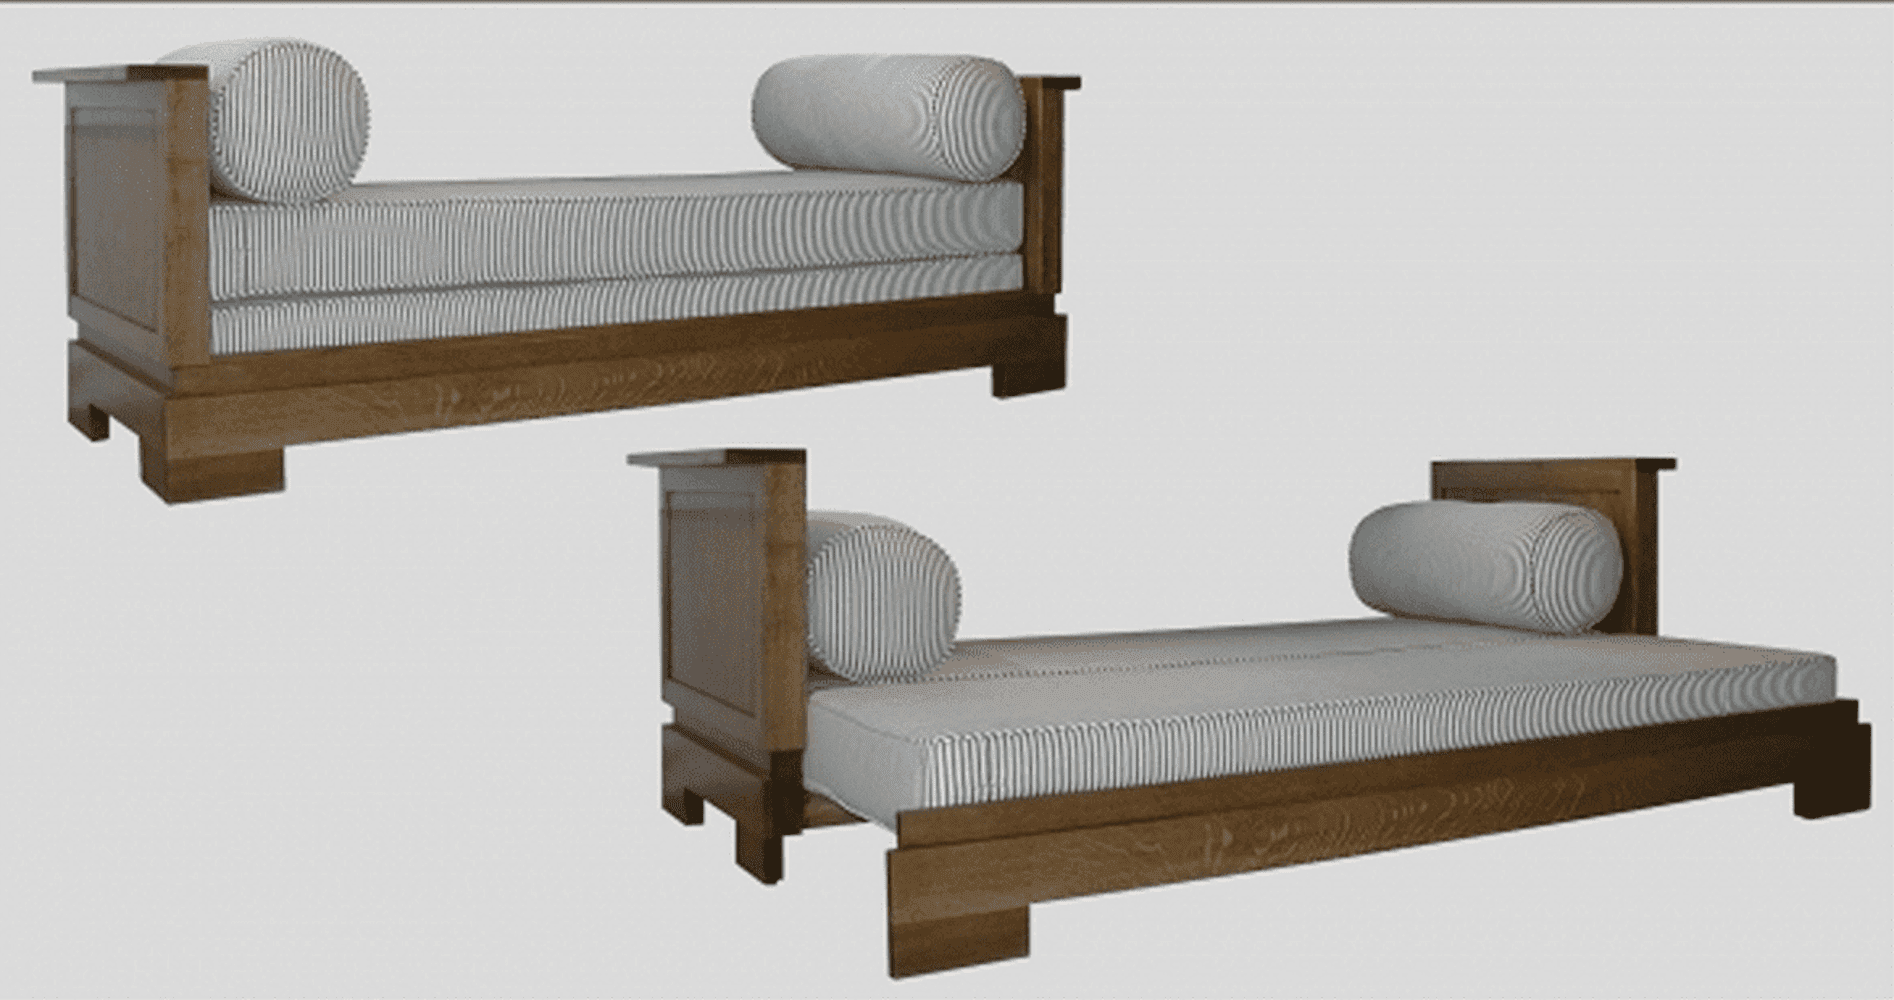 Demonstration of daybed folding out